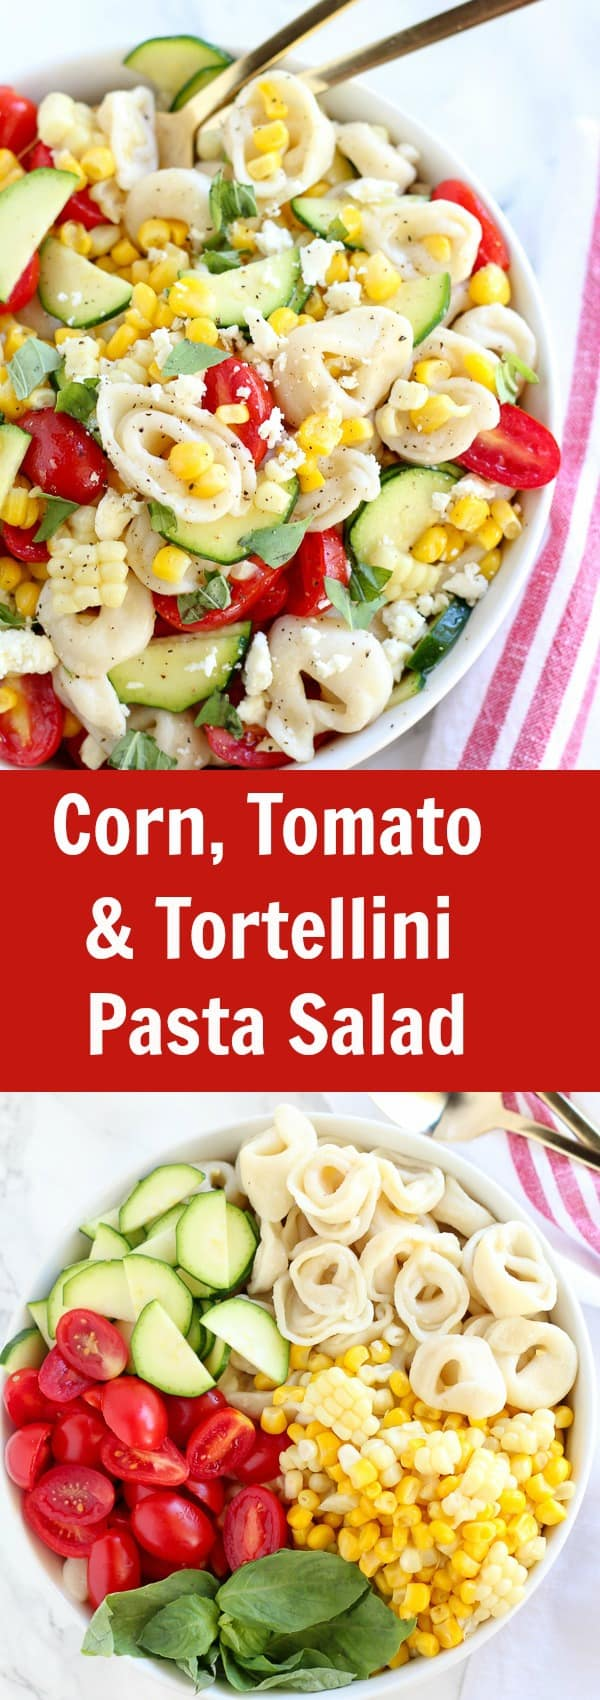 Corn, Tomato and Tortellini Pasta Salad